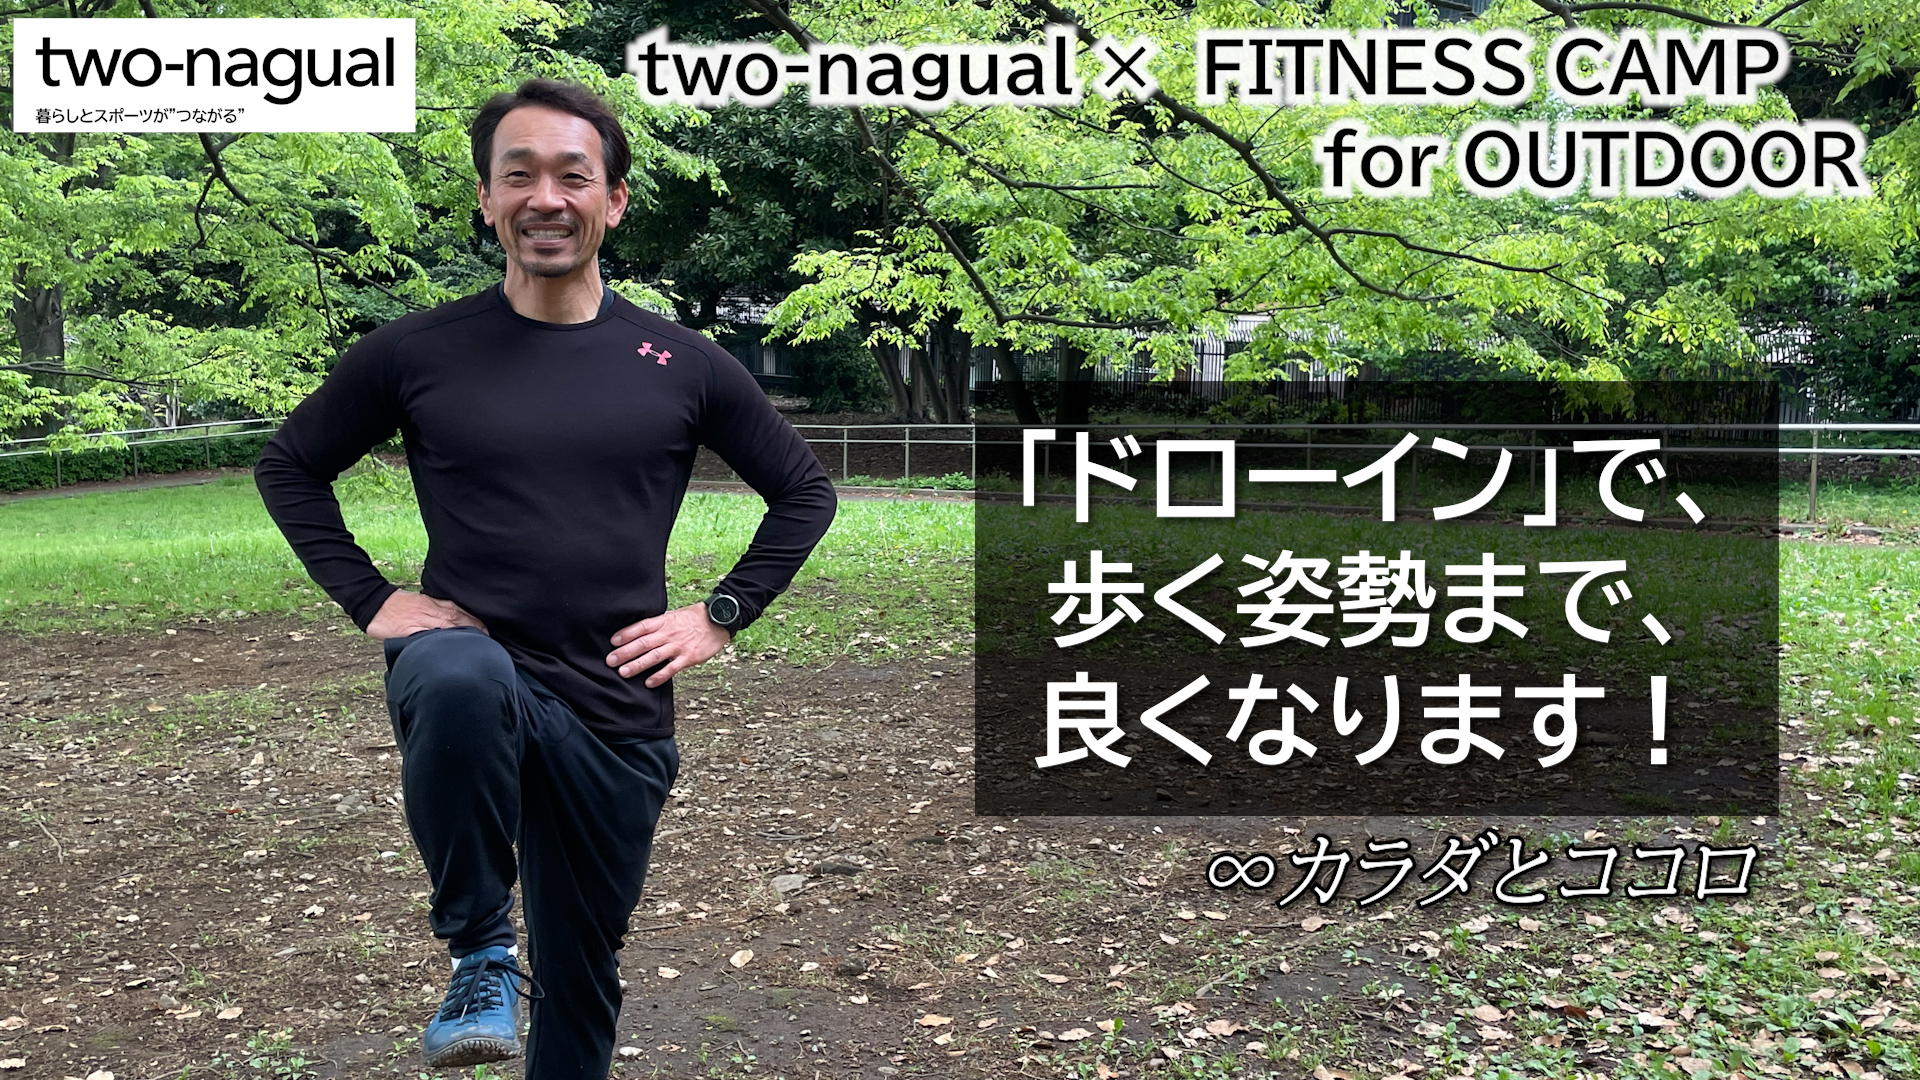 <small>【two-nagual × FITNESS CAMP for OUTDOOR】</small><br />「ドローイン」で、<br />歩く姿勢まで、良くなります!